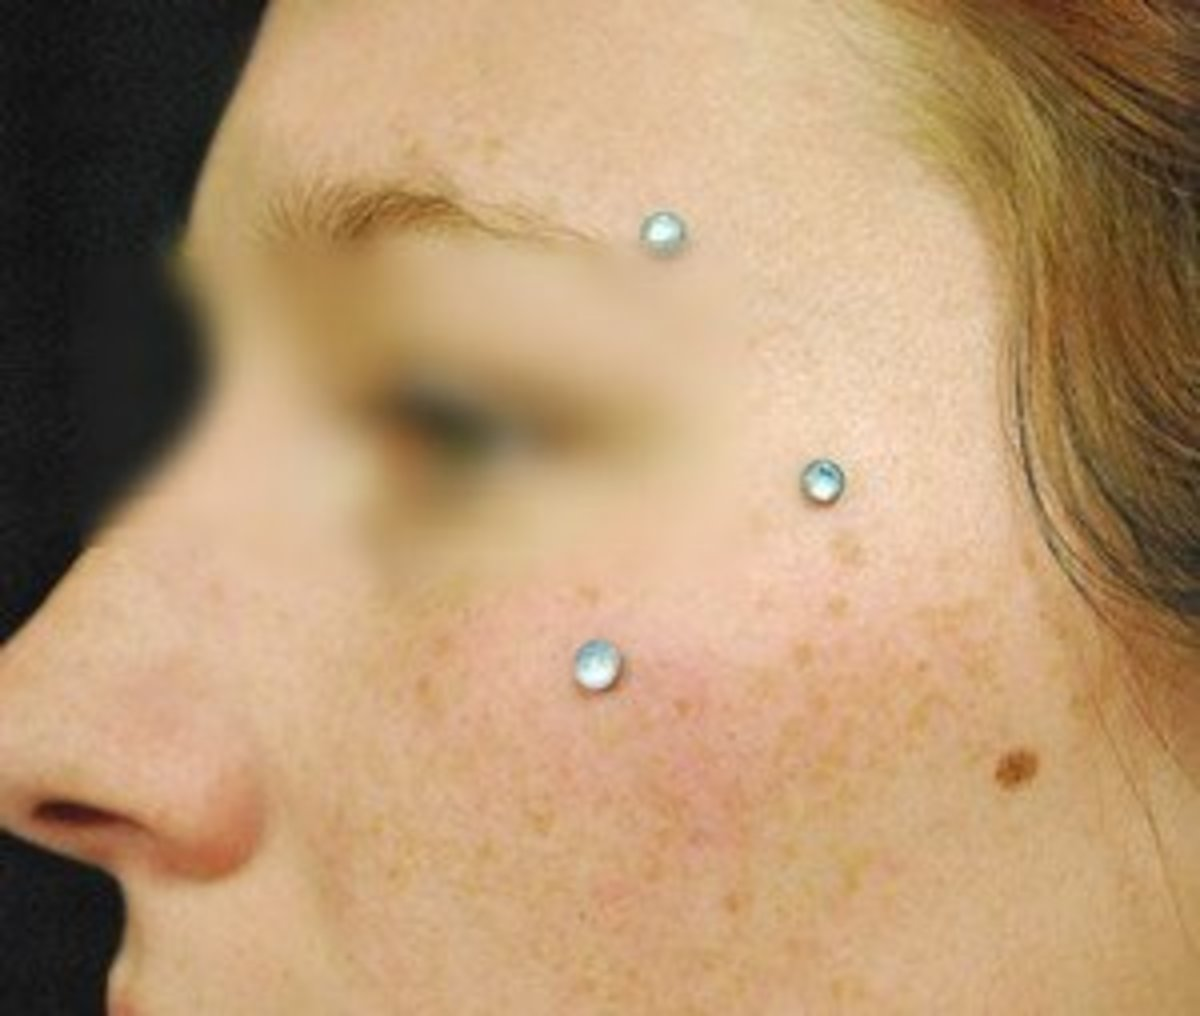 Dermal Body Piercings